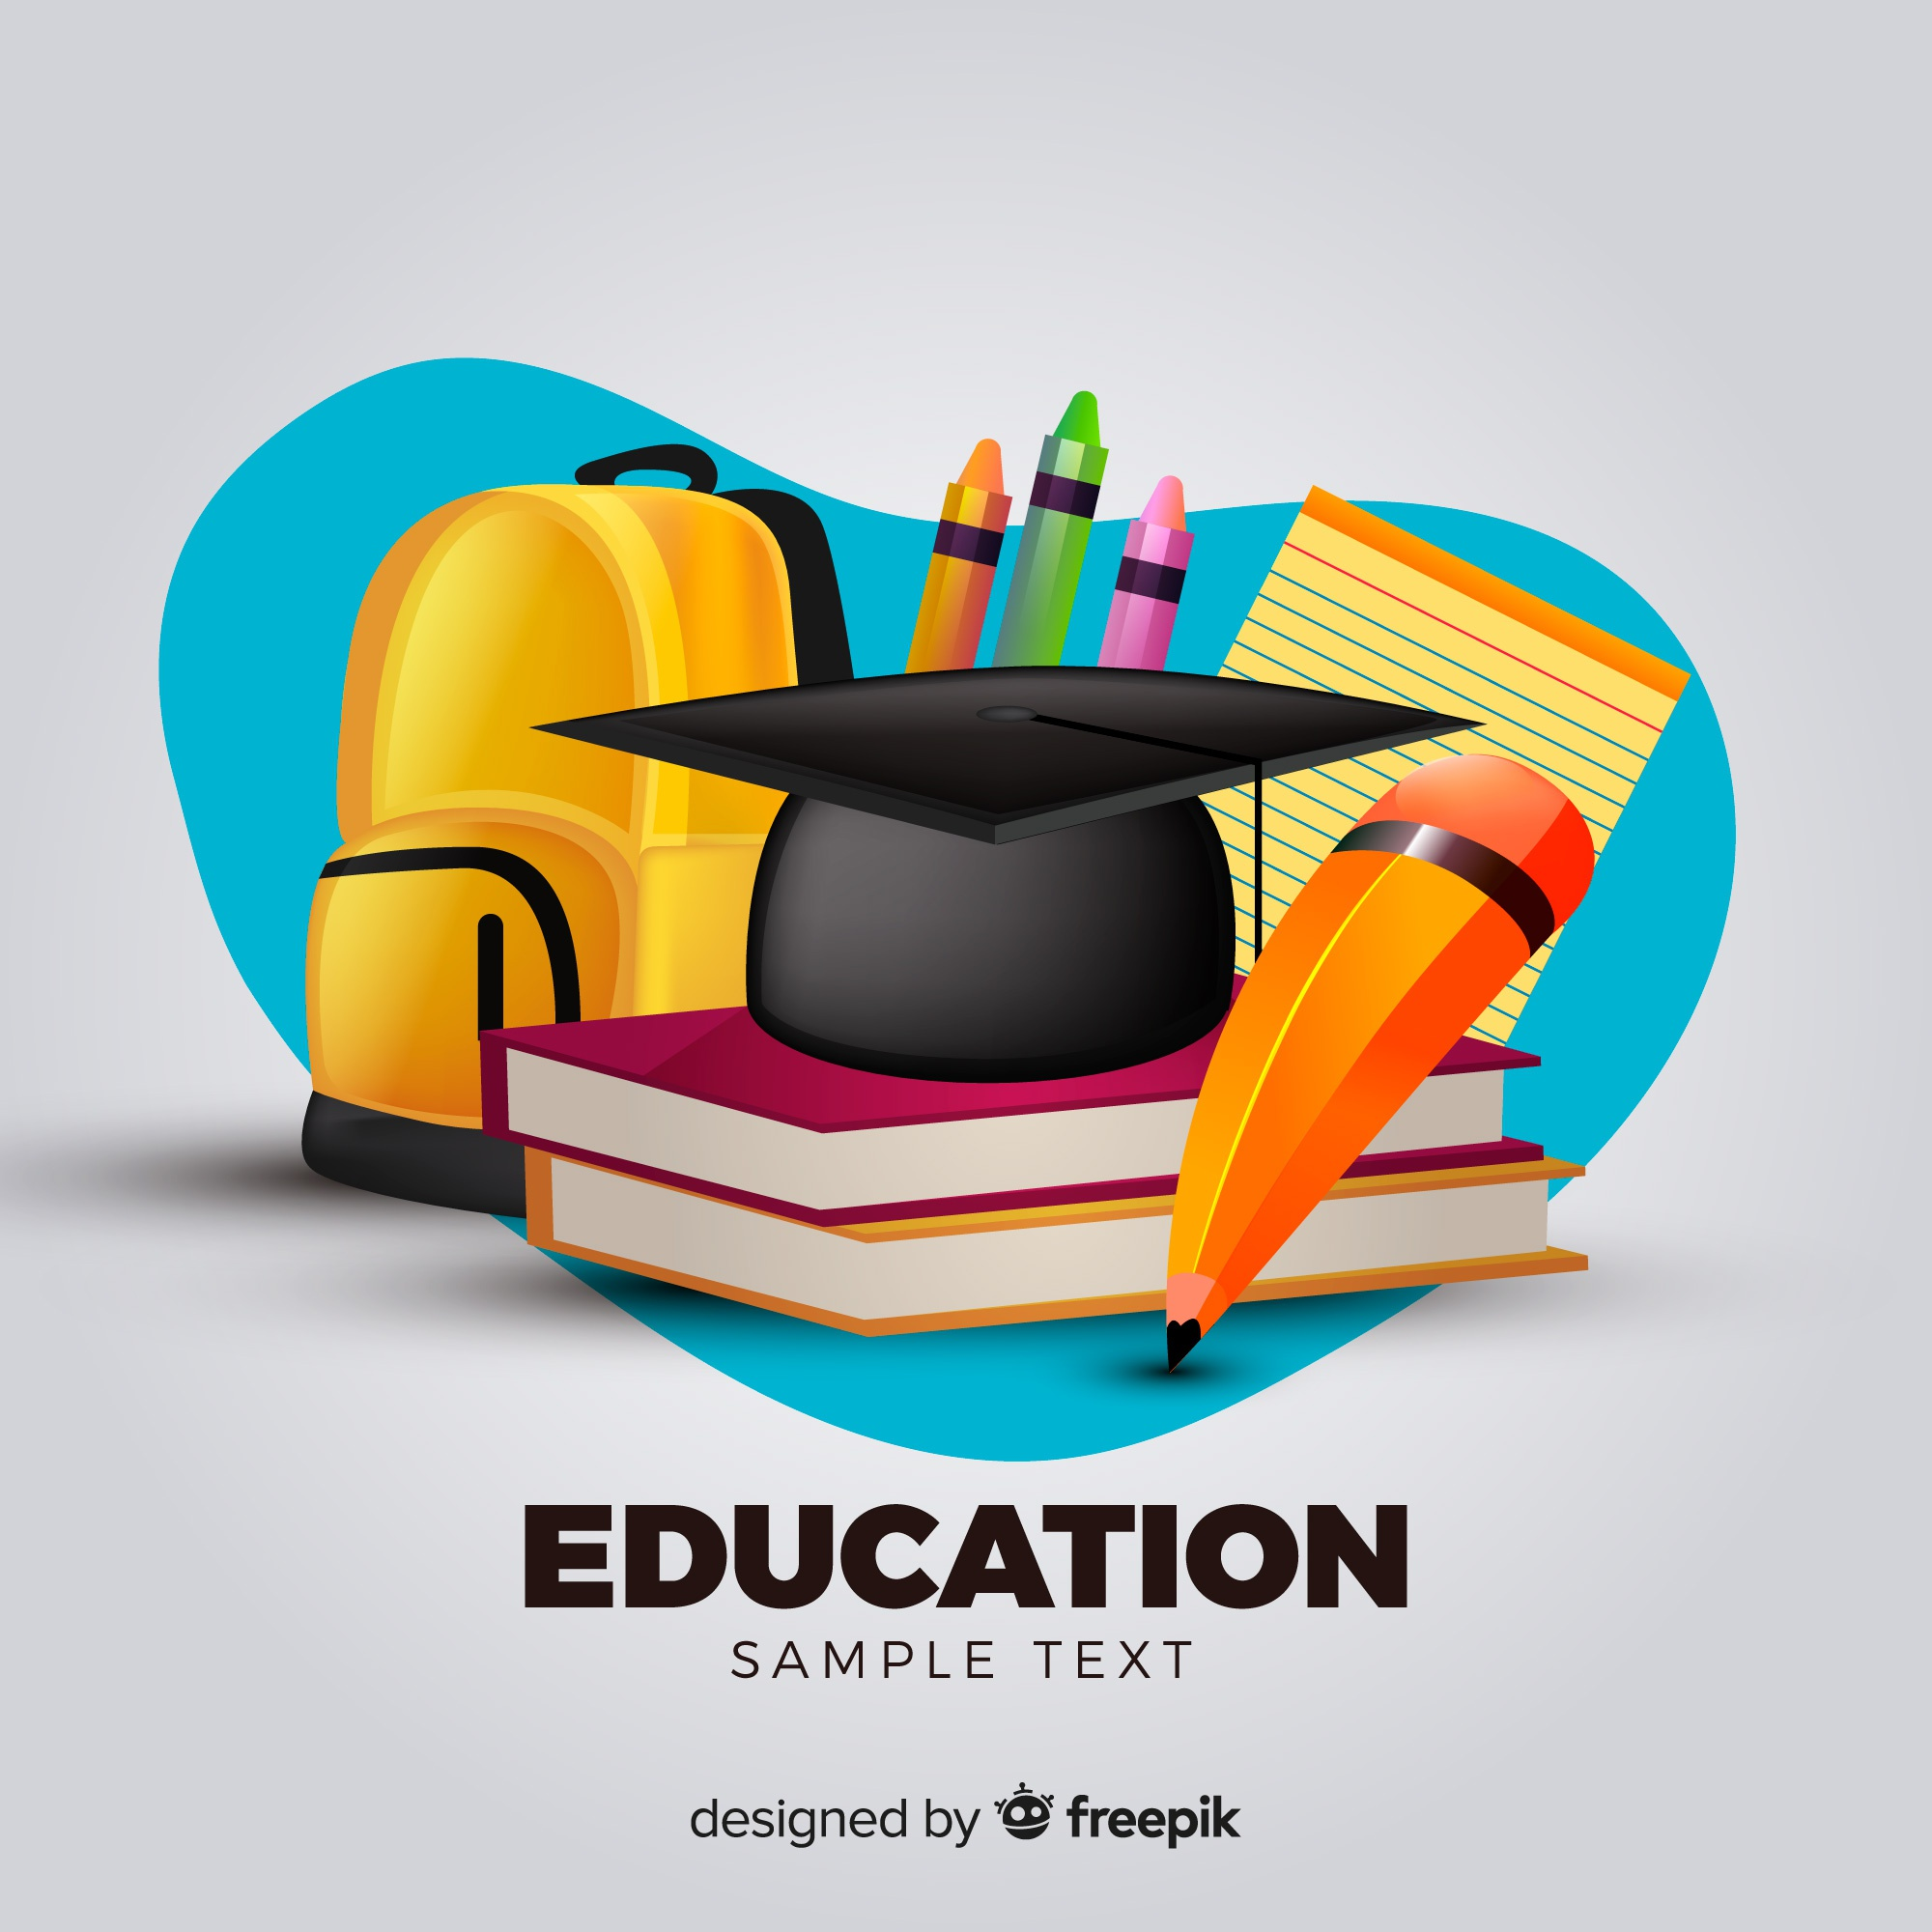 Lovely education concept with realistic design